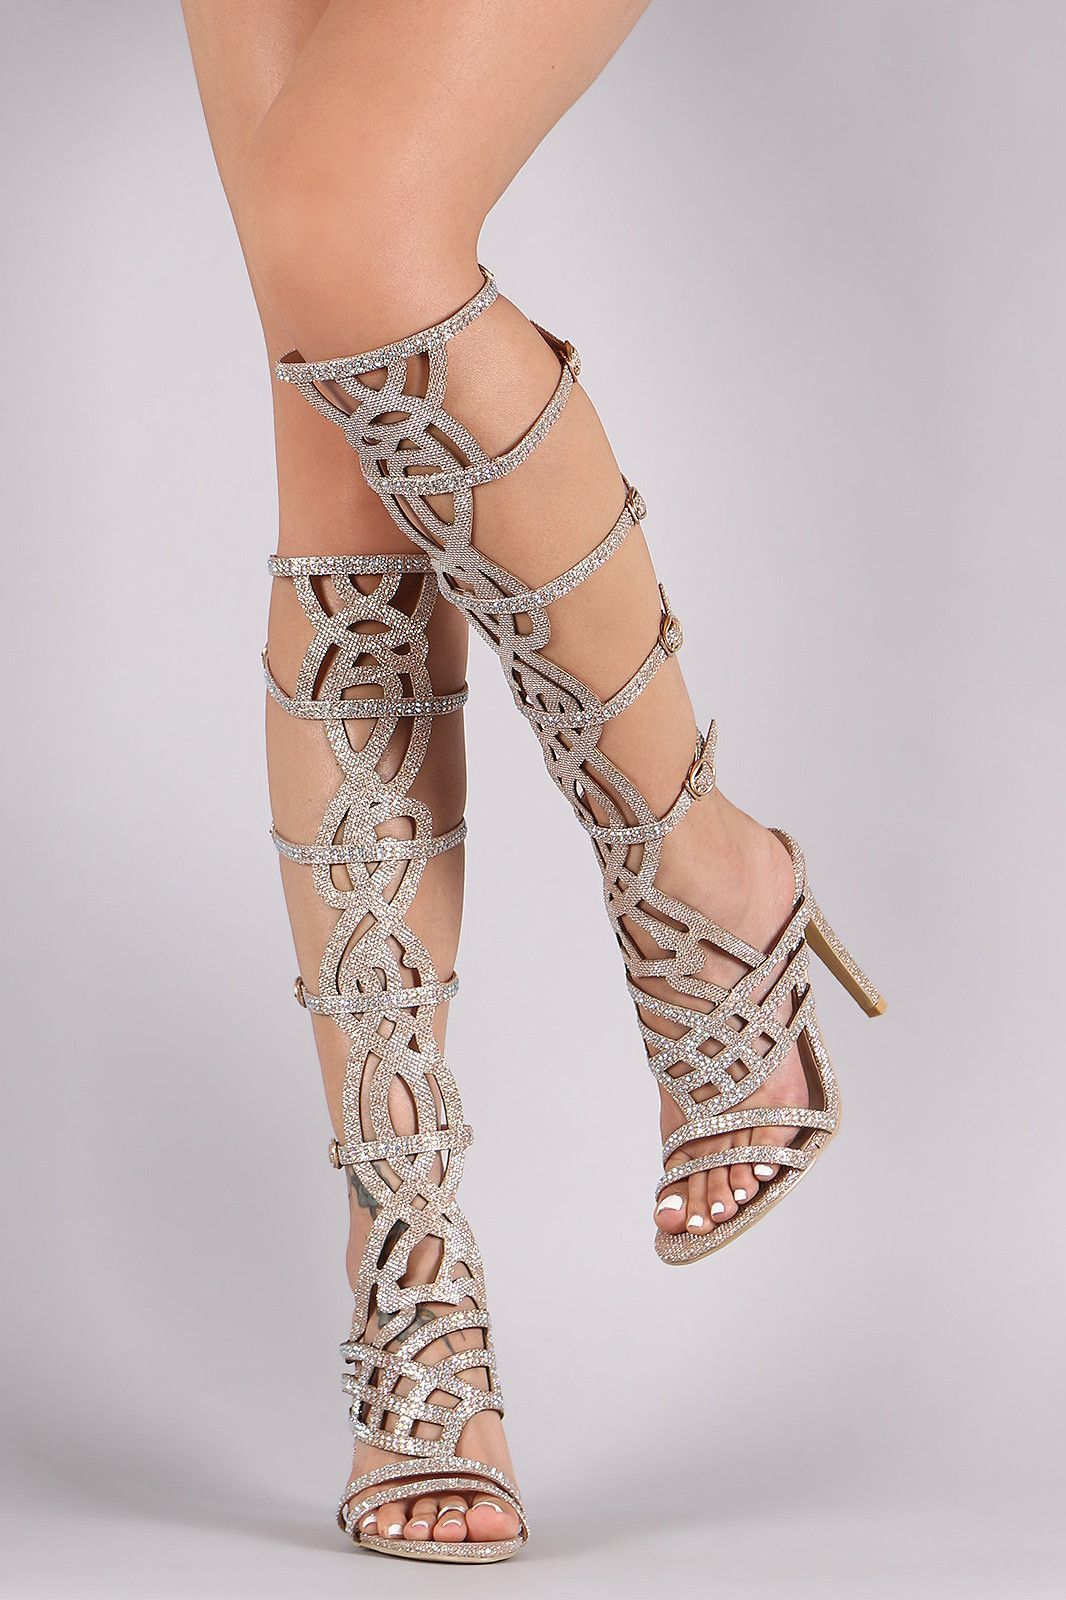 2b41346837cc56 This stunning heel features a strappy caged design shaft